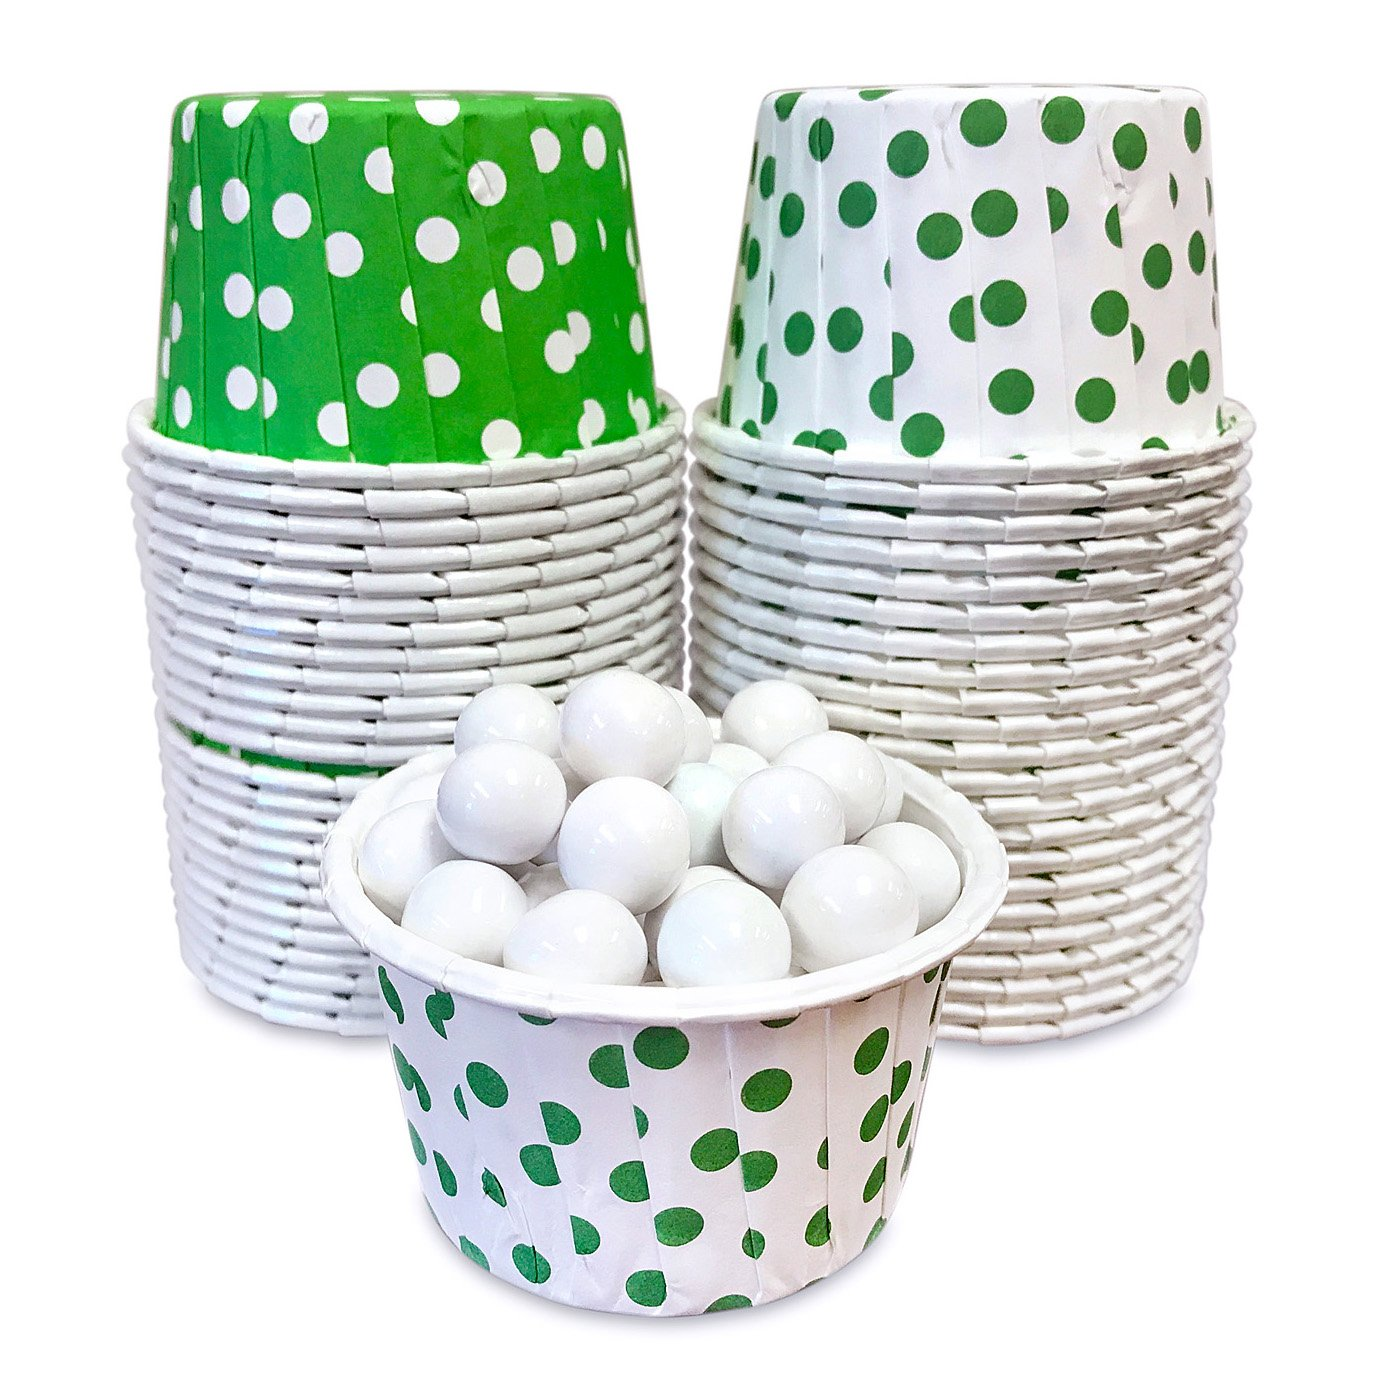 Candy Nut Mini Baking Paper Treat Cups - Green and White Dot - 2 x 1.5